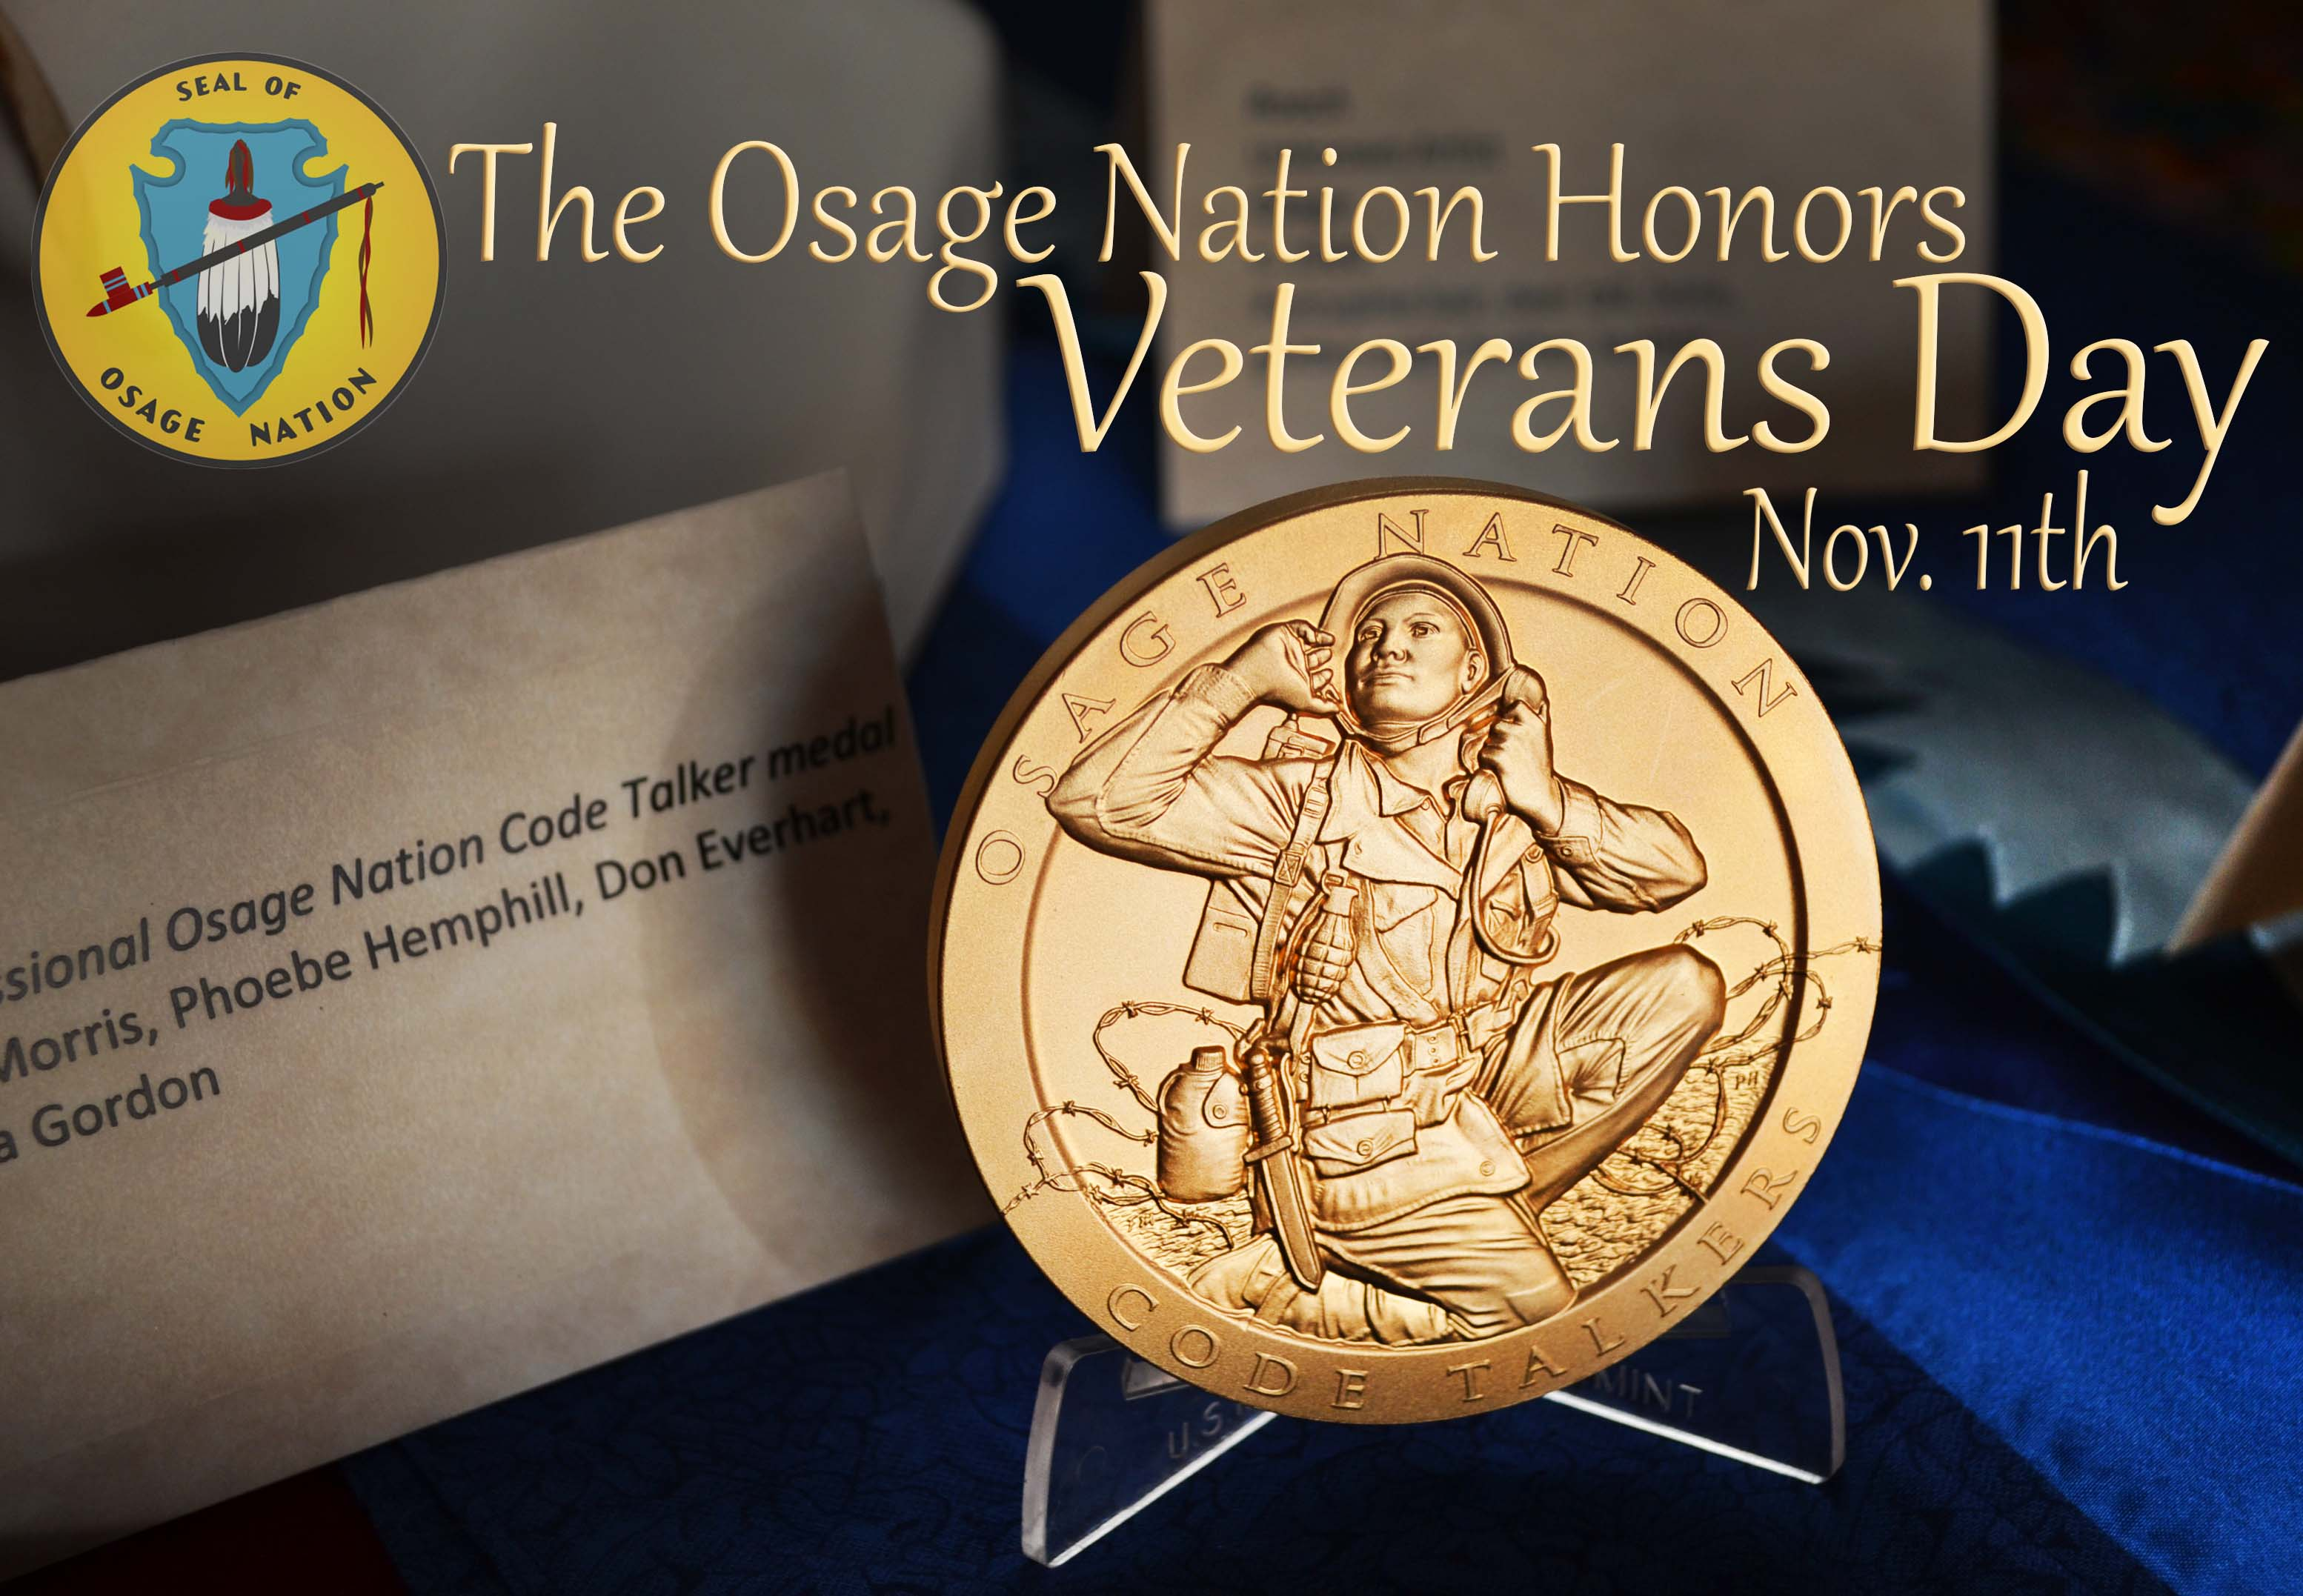 Granddaughter of WWI Osage Code Talker to receive medal at Veterans Day dance